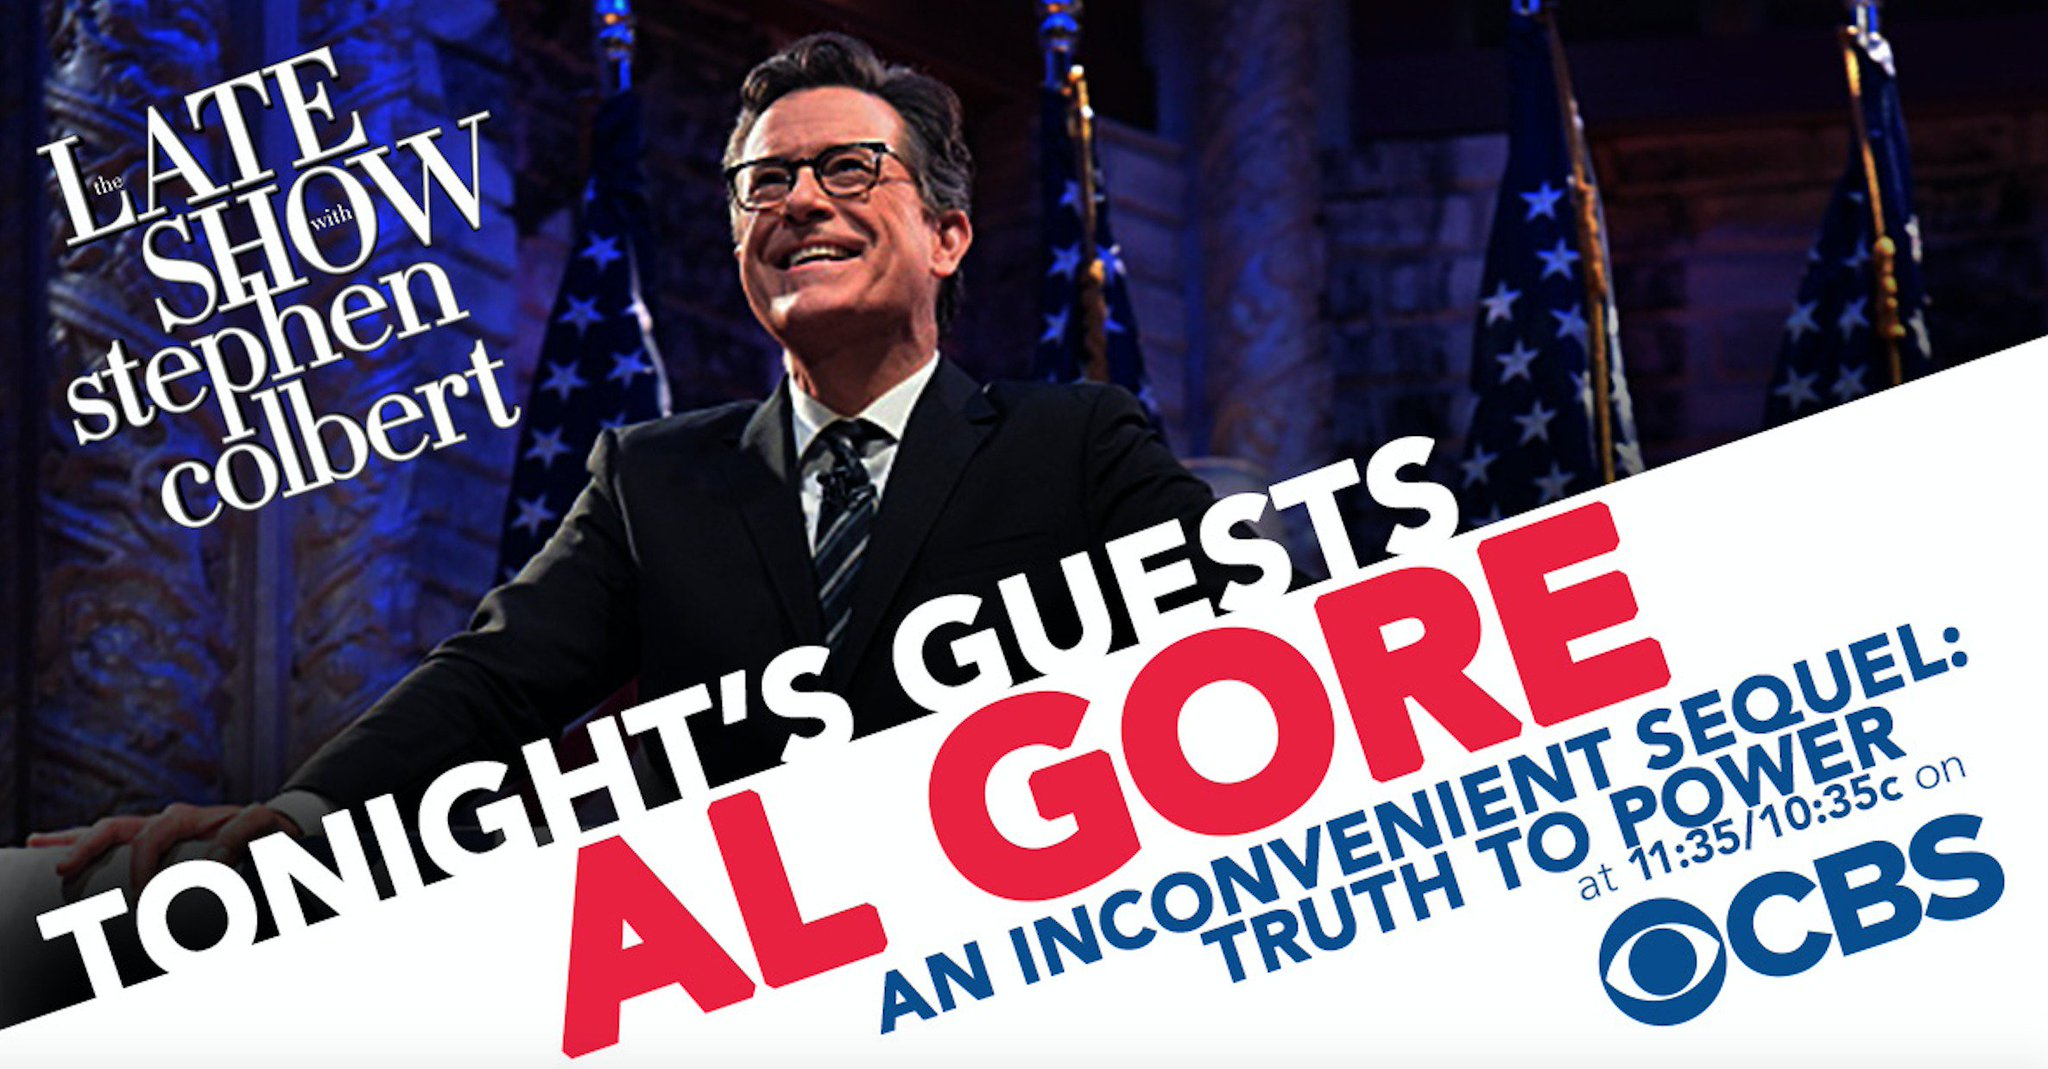 Excited to talk @aitruthfilm on tonight's episode of @colbertlateshow. #BeInconvenient https://t.co/zW5RNBj6M1